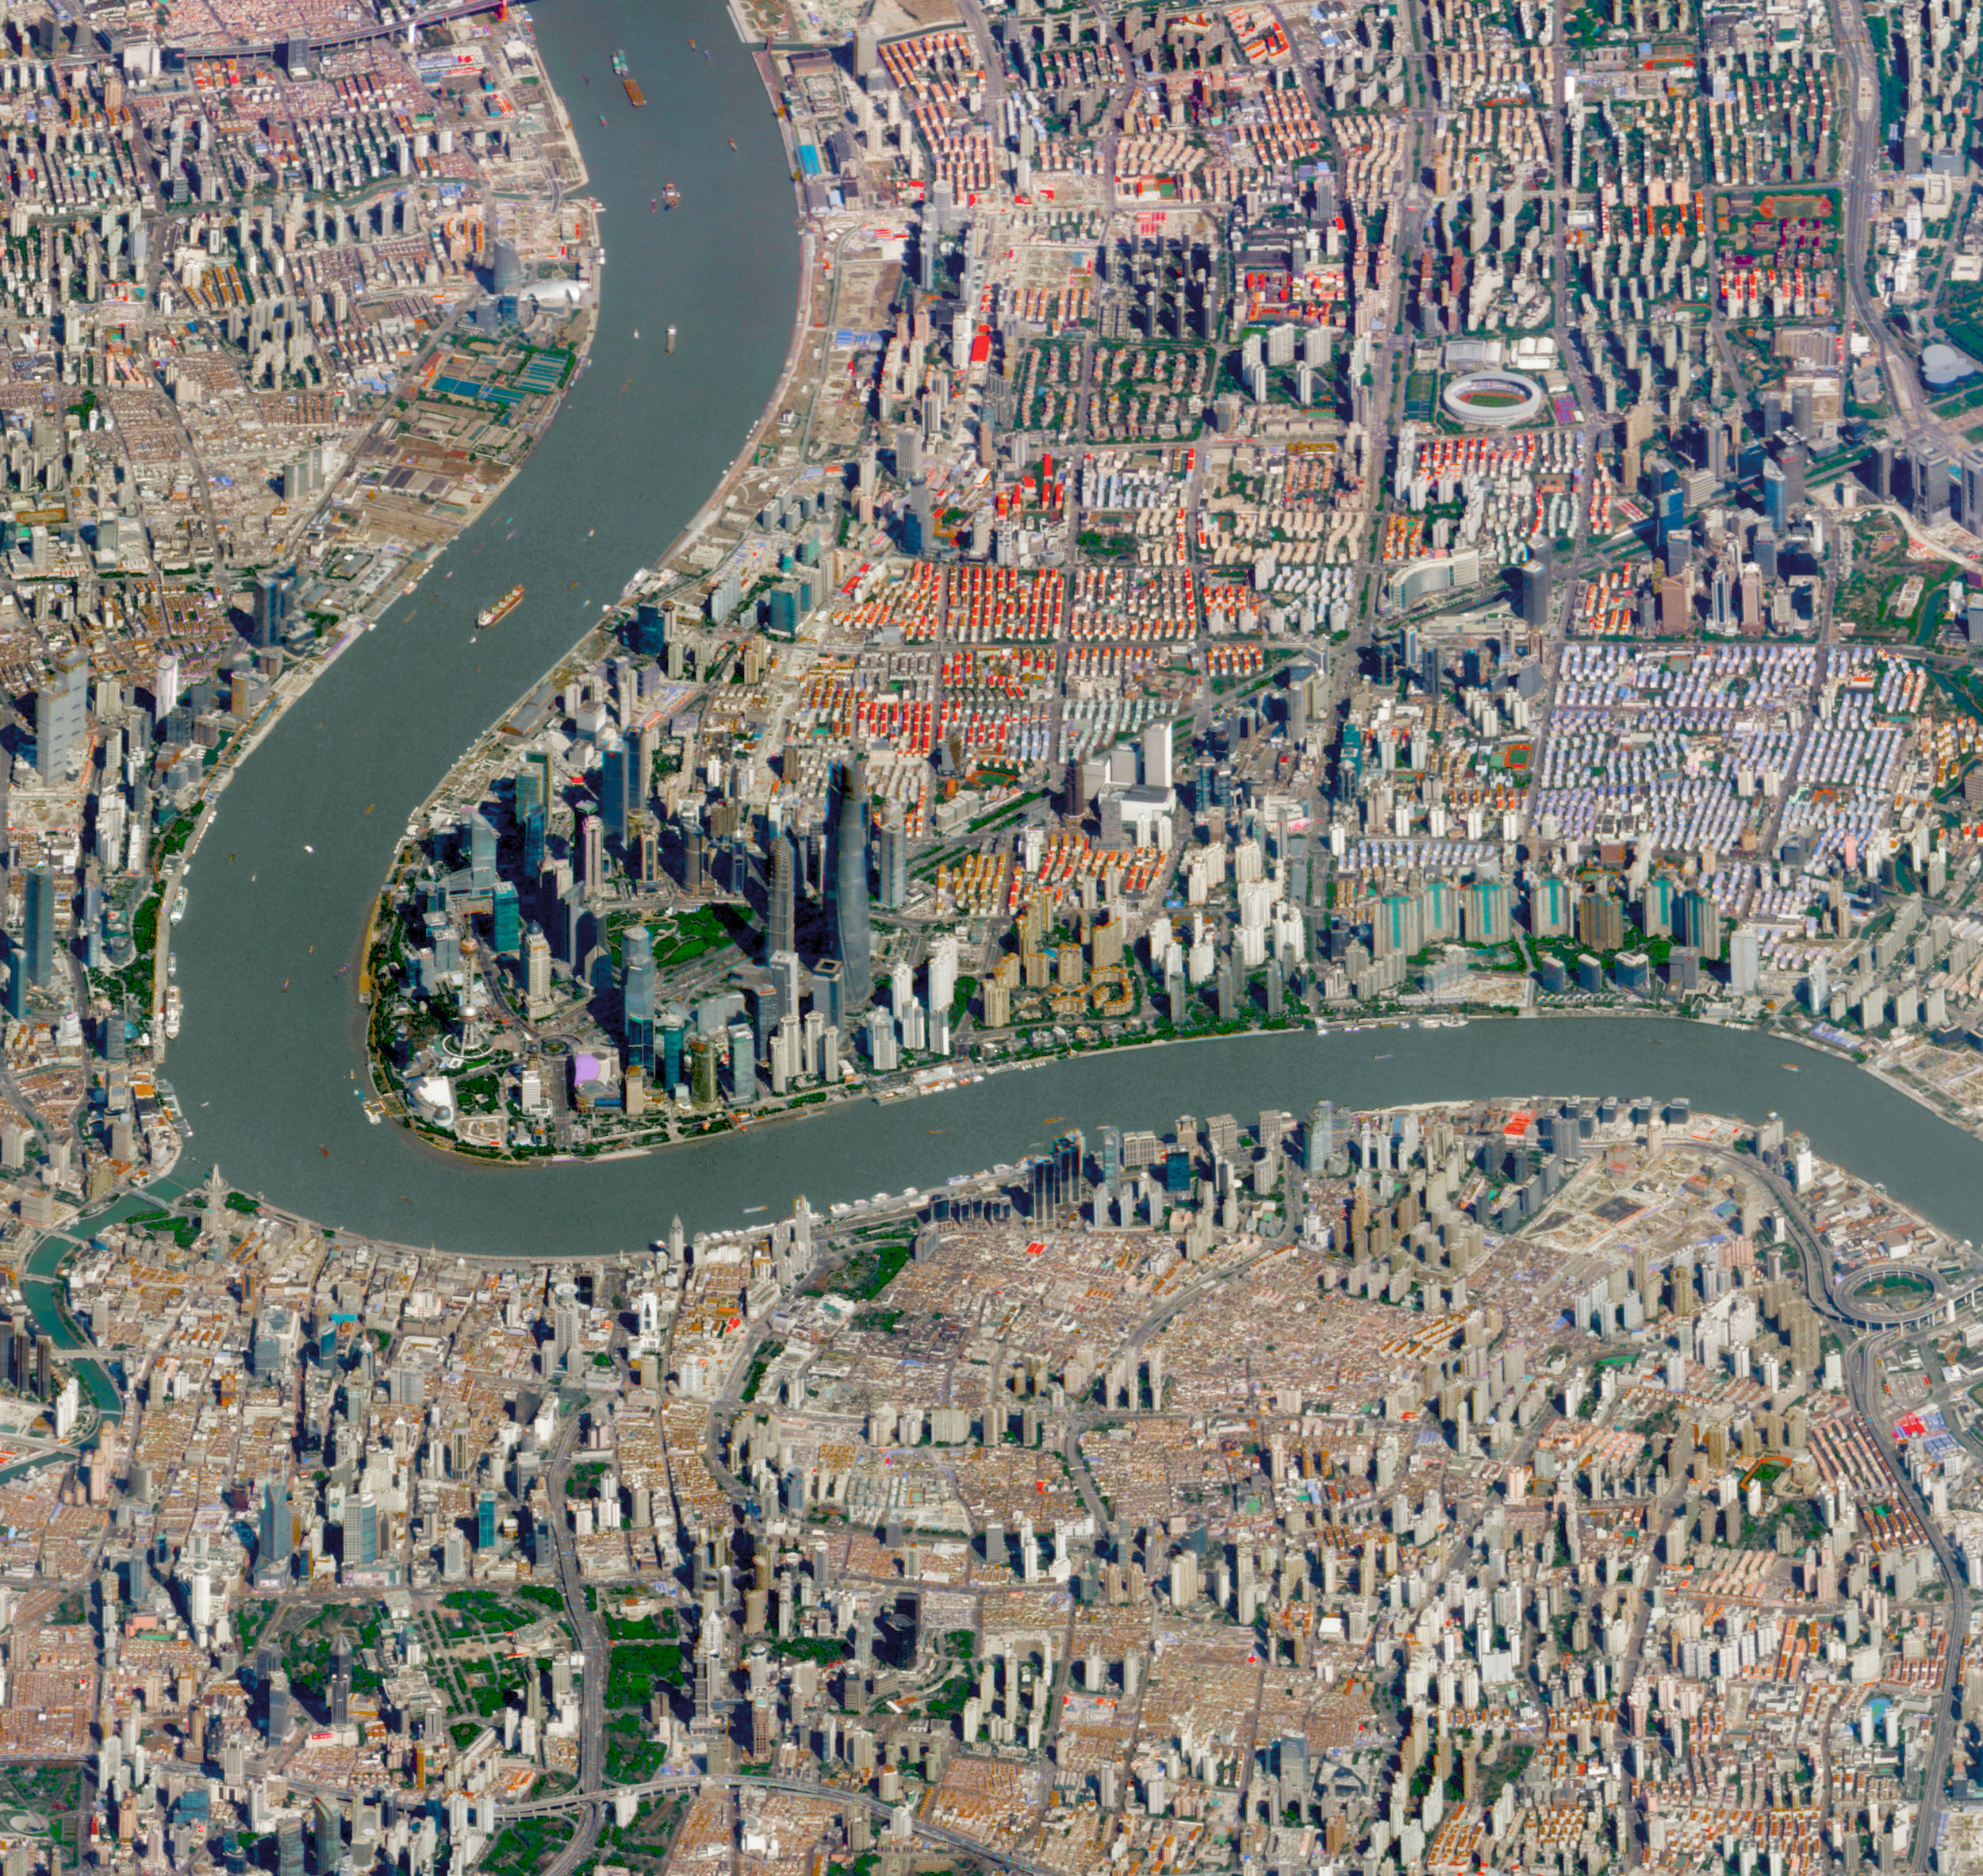 """Check out this incredible perspective of Shanghai, China, captured by a Planet satellite at a low angle. With more than 24 million residents, Shanghai is the most populous city in China and the second-most populous city proper in the world. Many of Shanghai's landmarks are visible in this Overview, including the Oriental Pearl Tower, the Jin Mao Tower, and the Shanghai World Financial Center.  31°14'05.0""""N, 121°30'23.0""""E  Source imagery: Planet"""